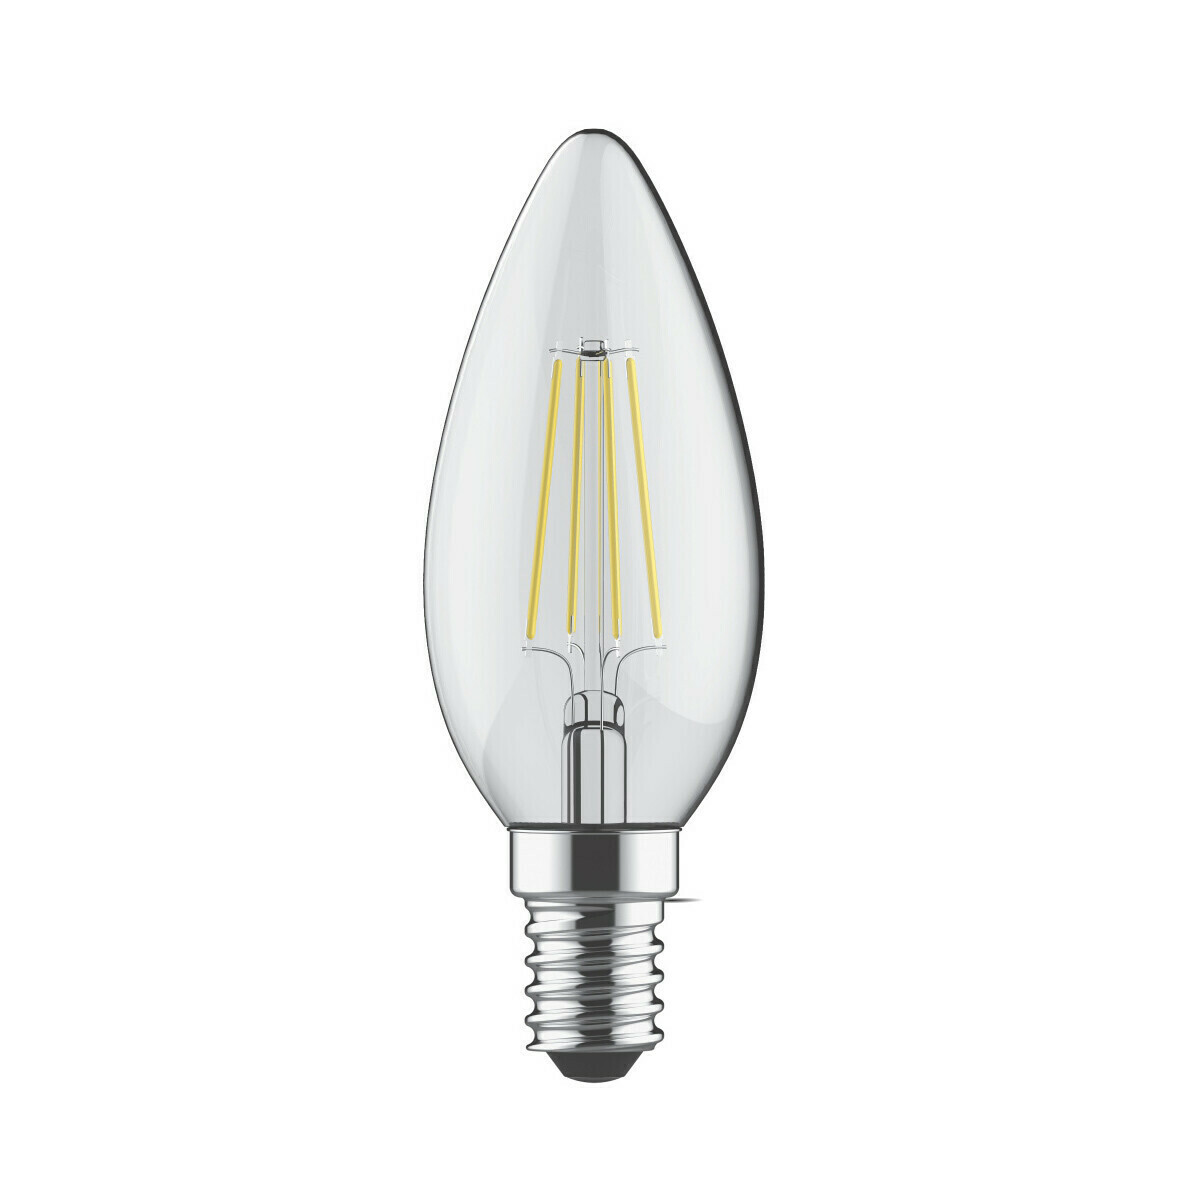 E14-LED filament-C35 4 Watt 4000K (natural white ) 520lm clear